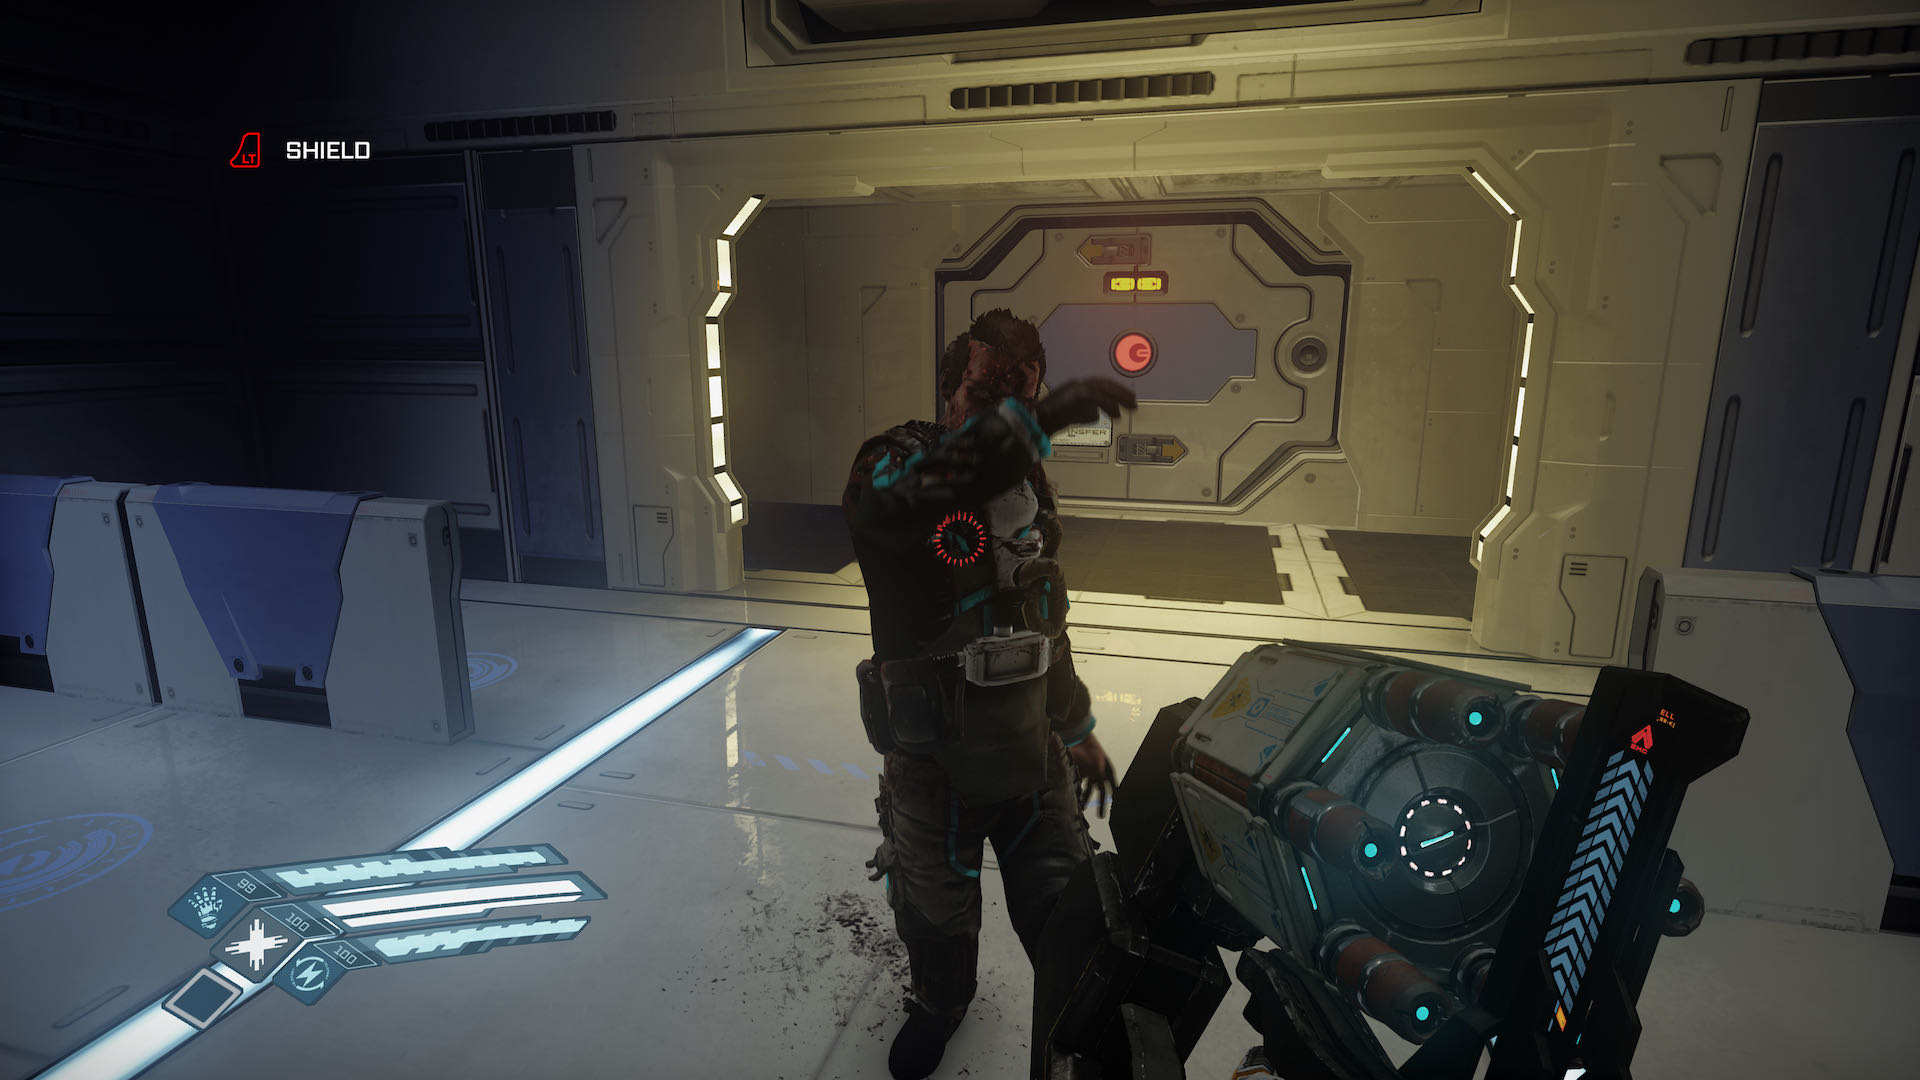 A screenshot from The Persistence, you seem to be threatening a crewmate with a large weapon, but it could all be a misunderstanding.